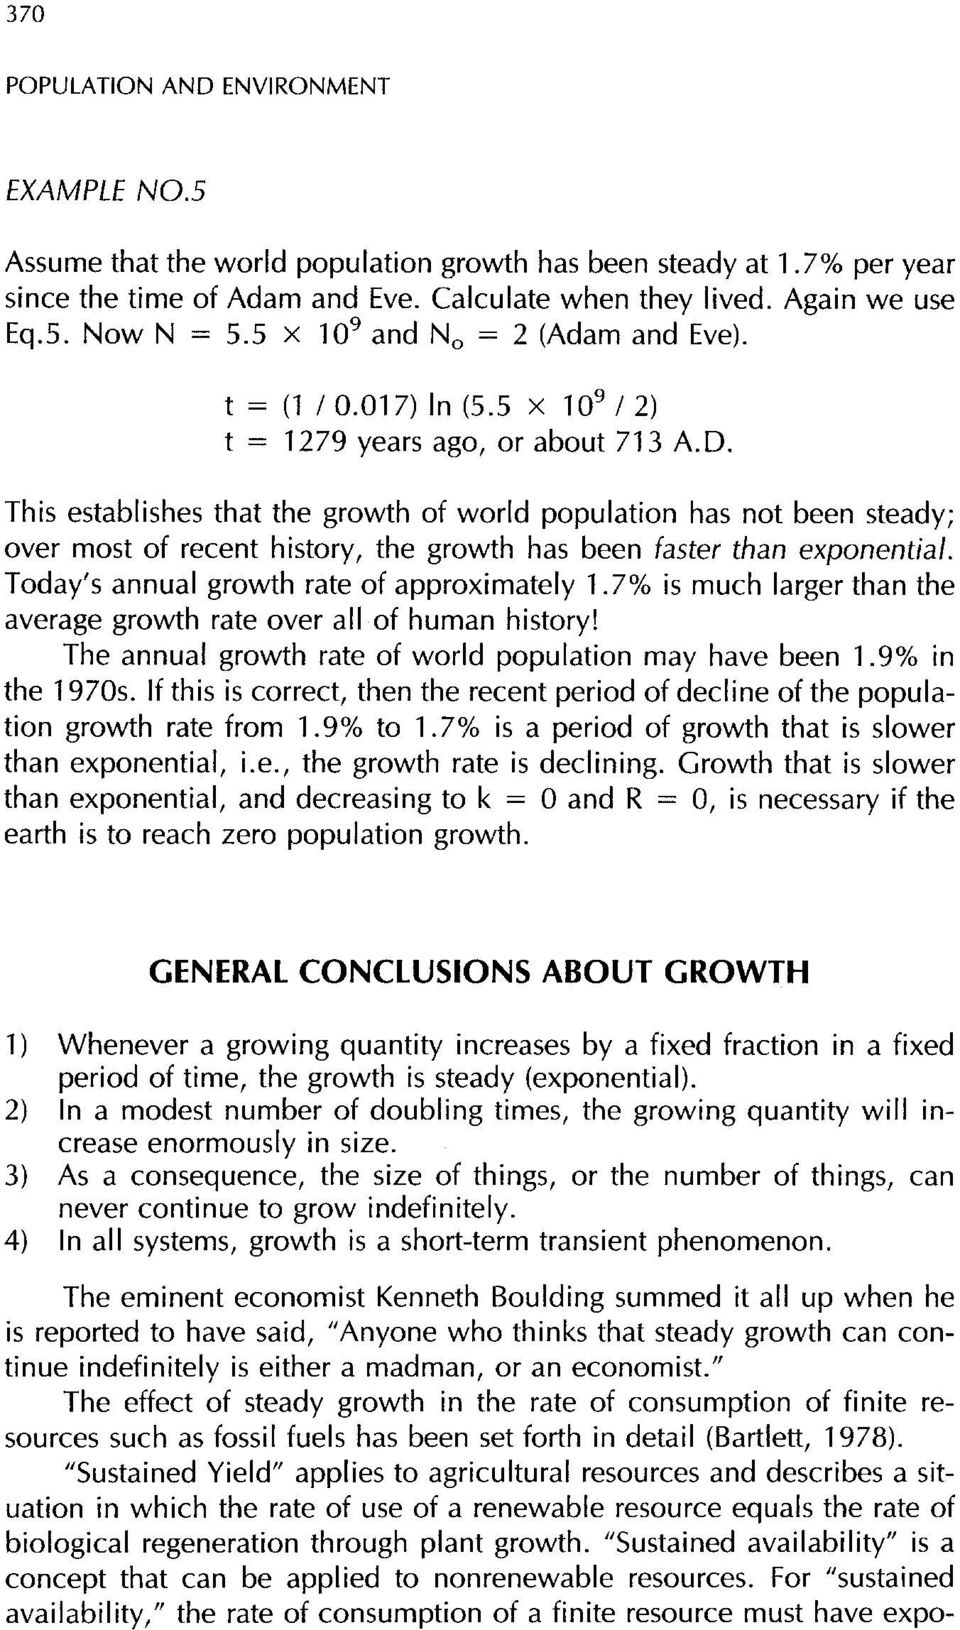 This establishes that the growth of world population has not been steady; over most of recent history, the growth has been faster than exponential. Today's annual growth rate of approximately 1.